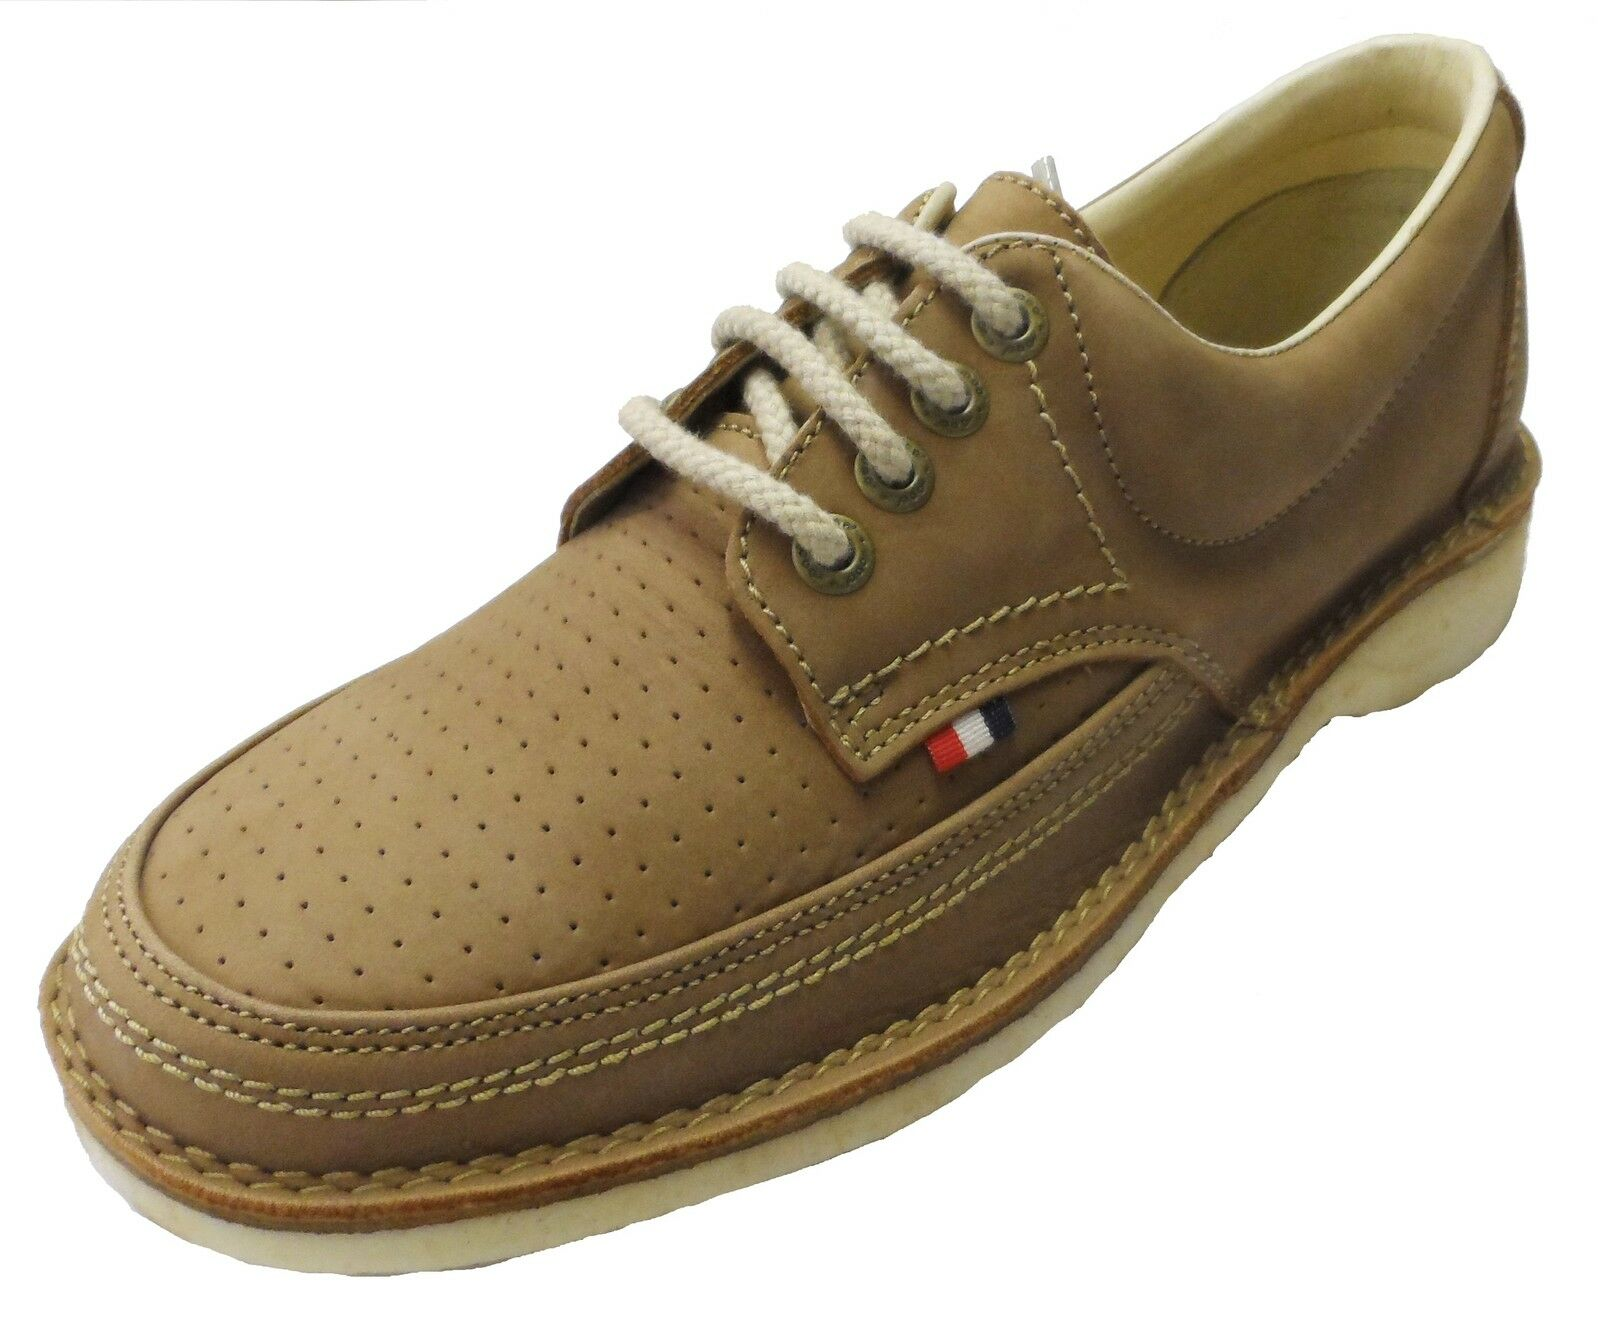 Pod Heritage Camel Gallagher Retro Mod Leder Schuhes